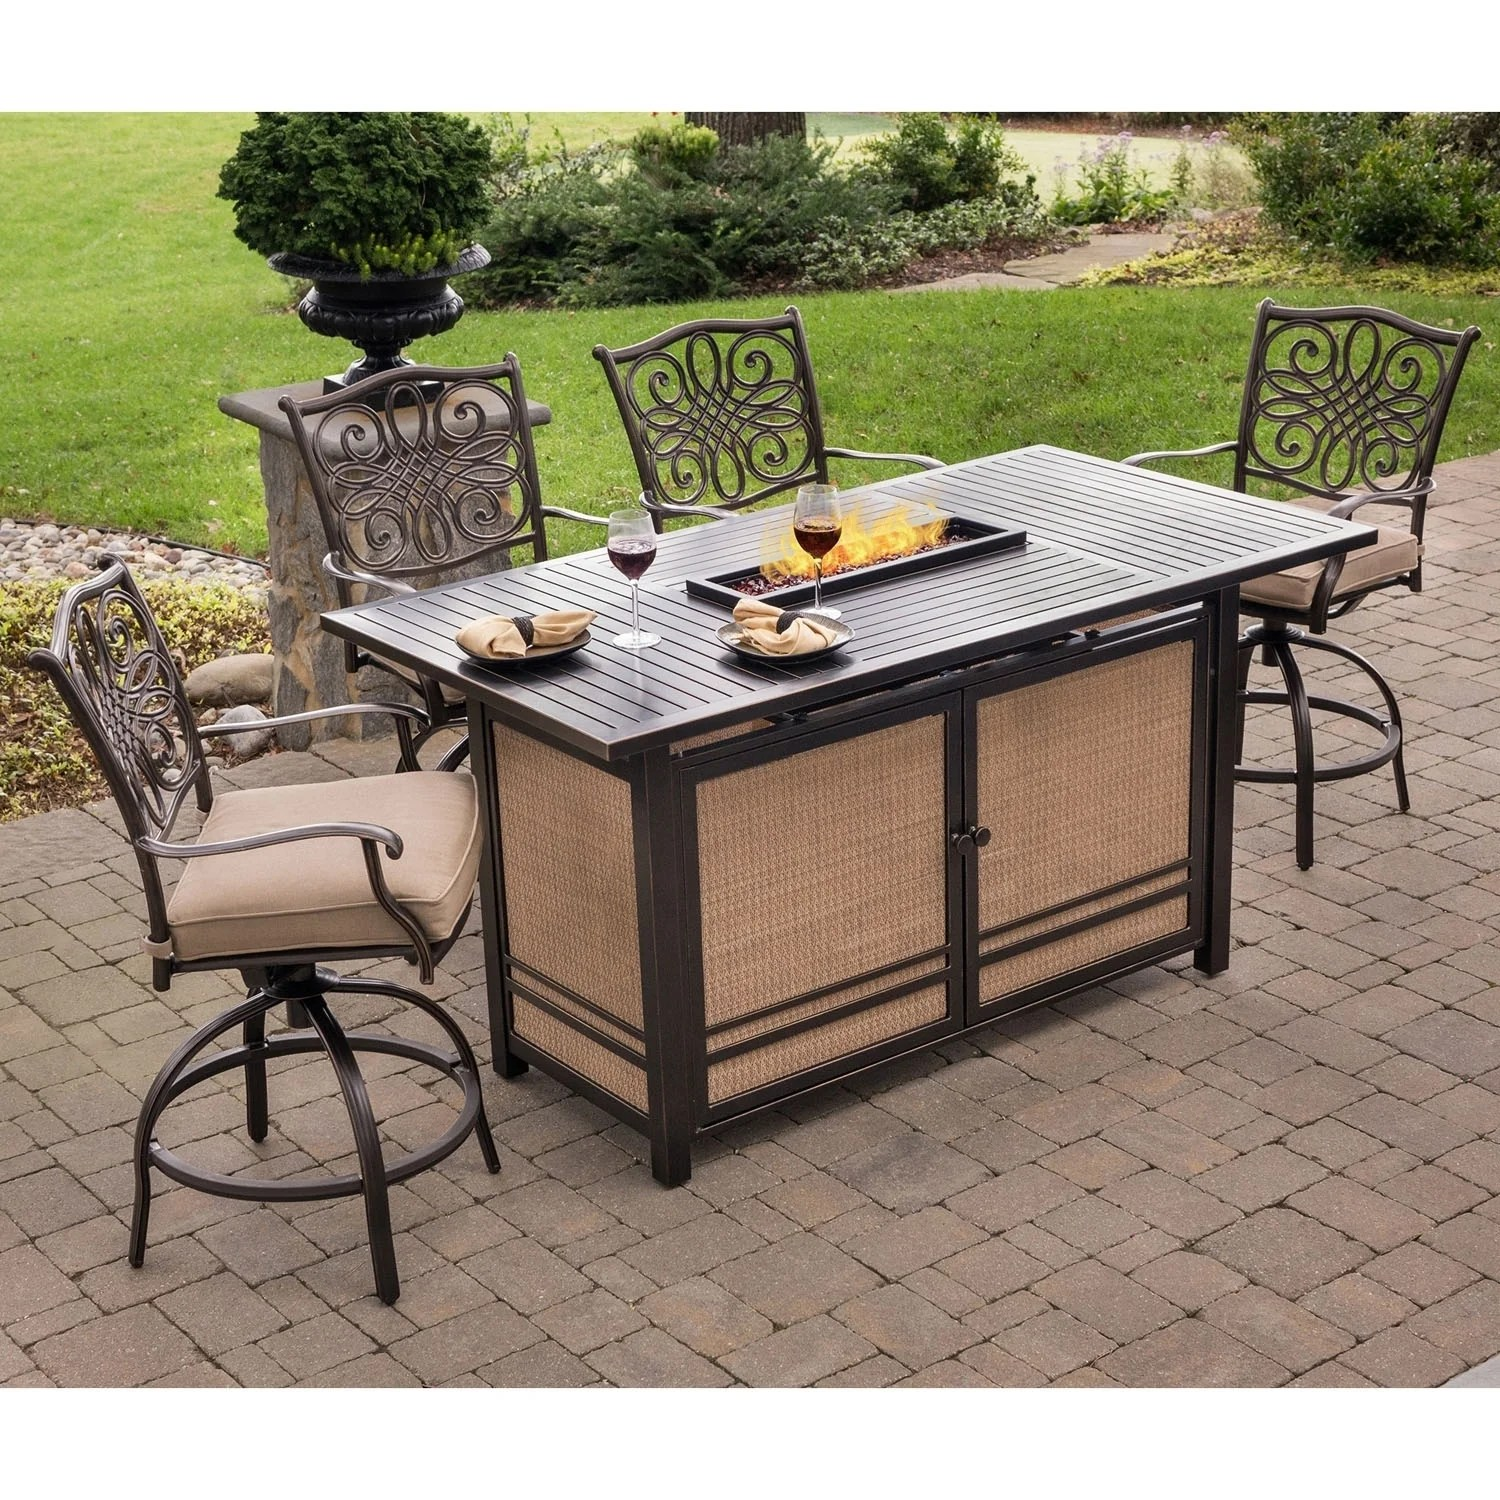 table with swivel chairs desk chair reddit shop traditions 5 piece high dining set in tan 4 and a 30 000 btu fire pit